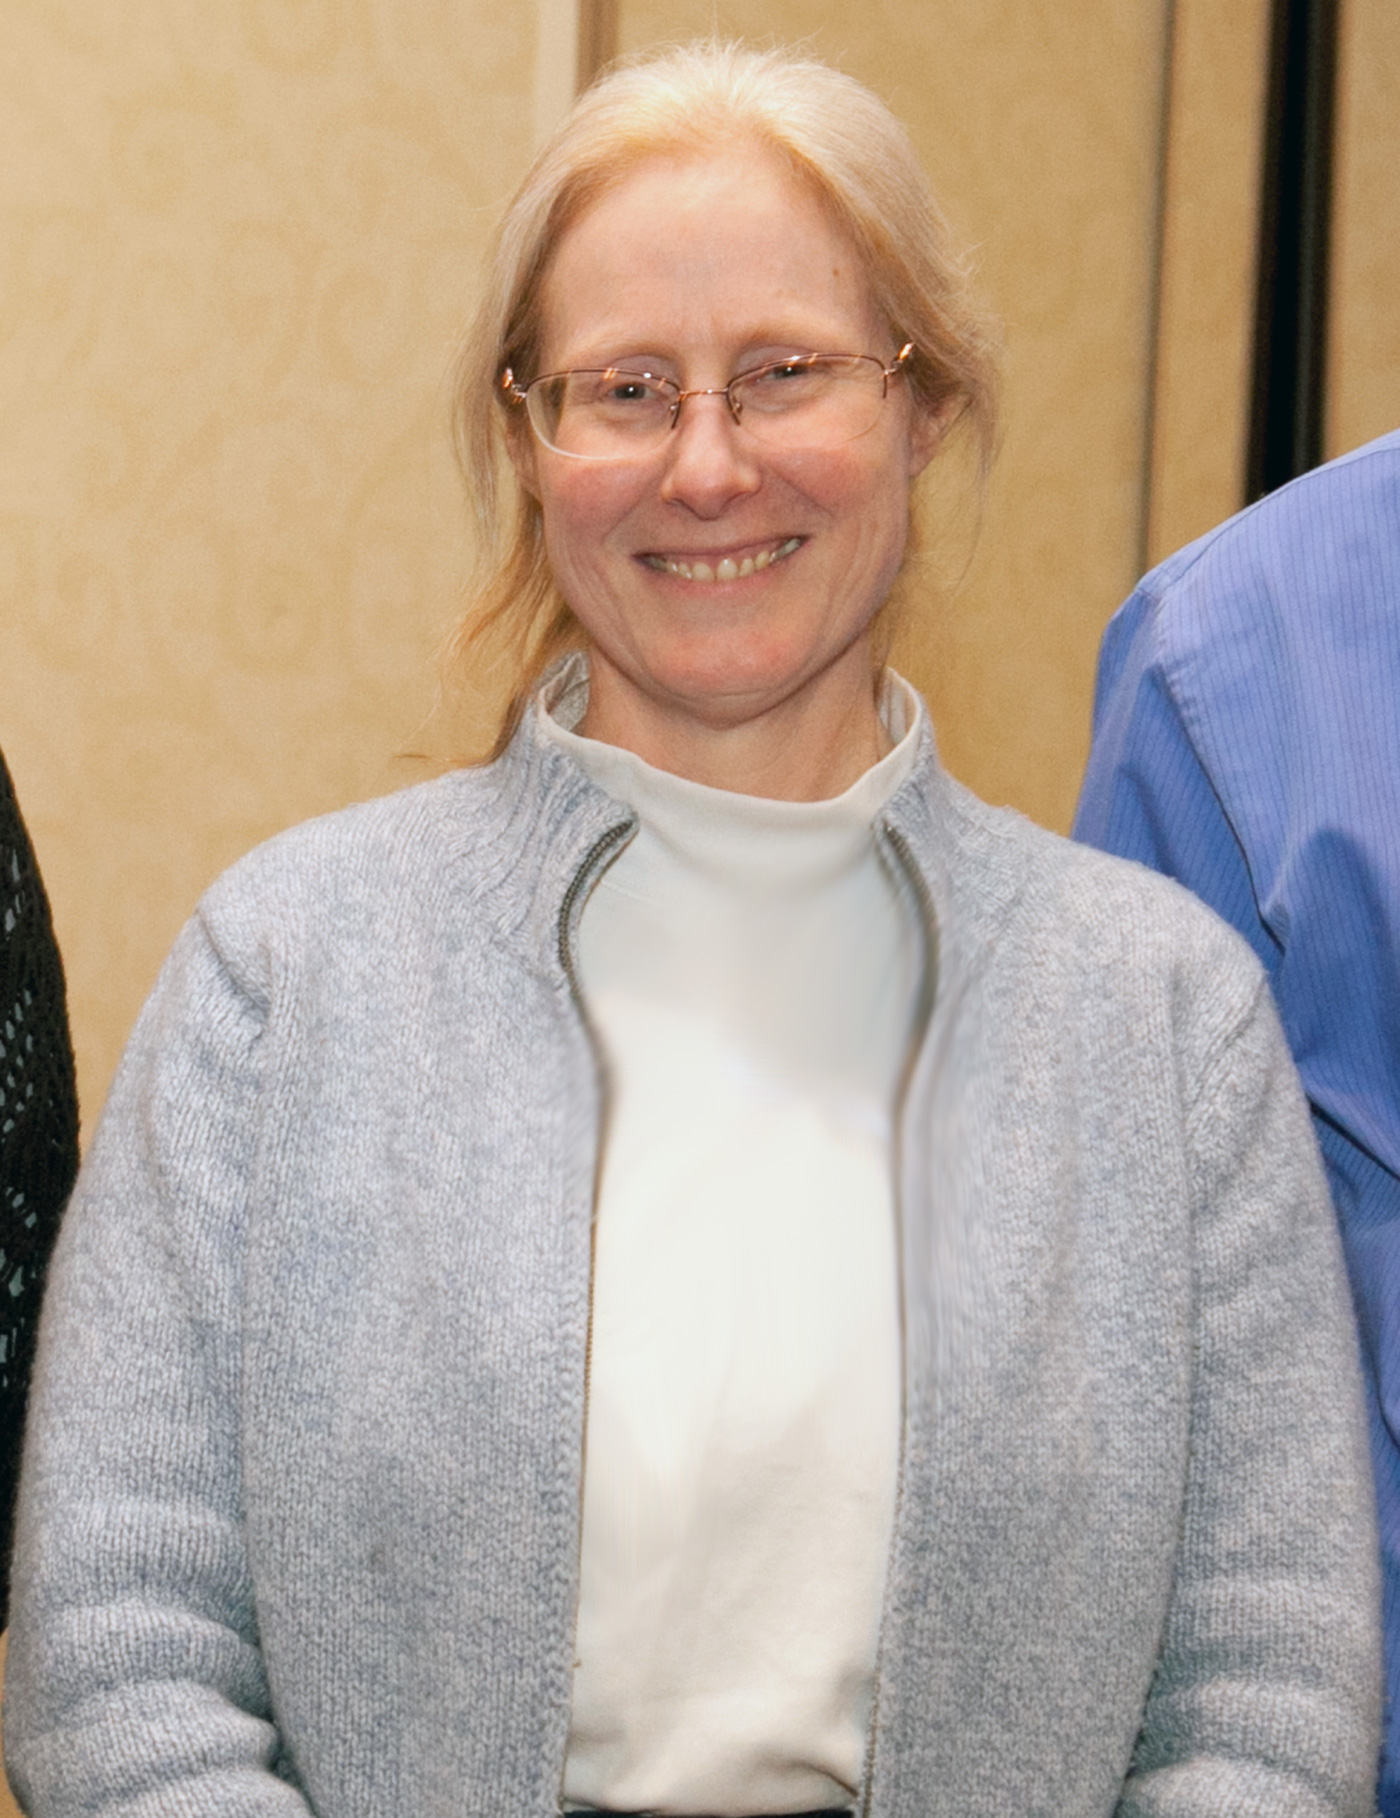 Nancy Goodyear, UMass Lowell Associate Professor